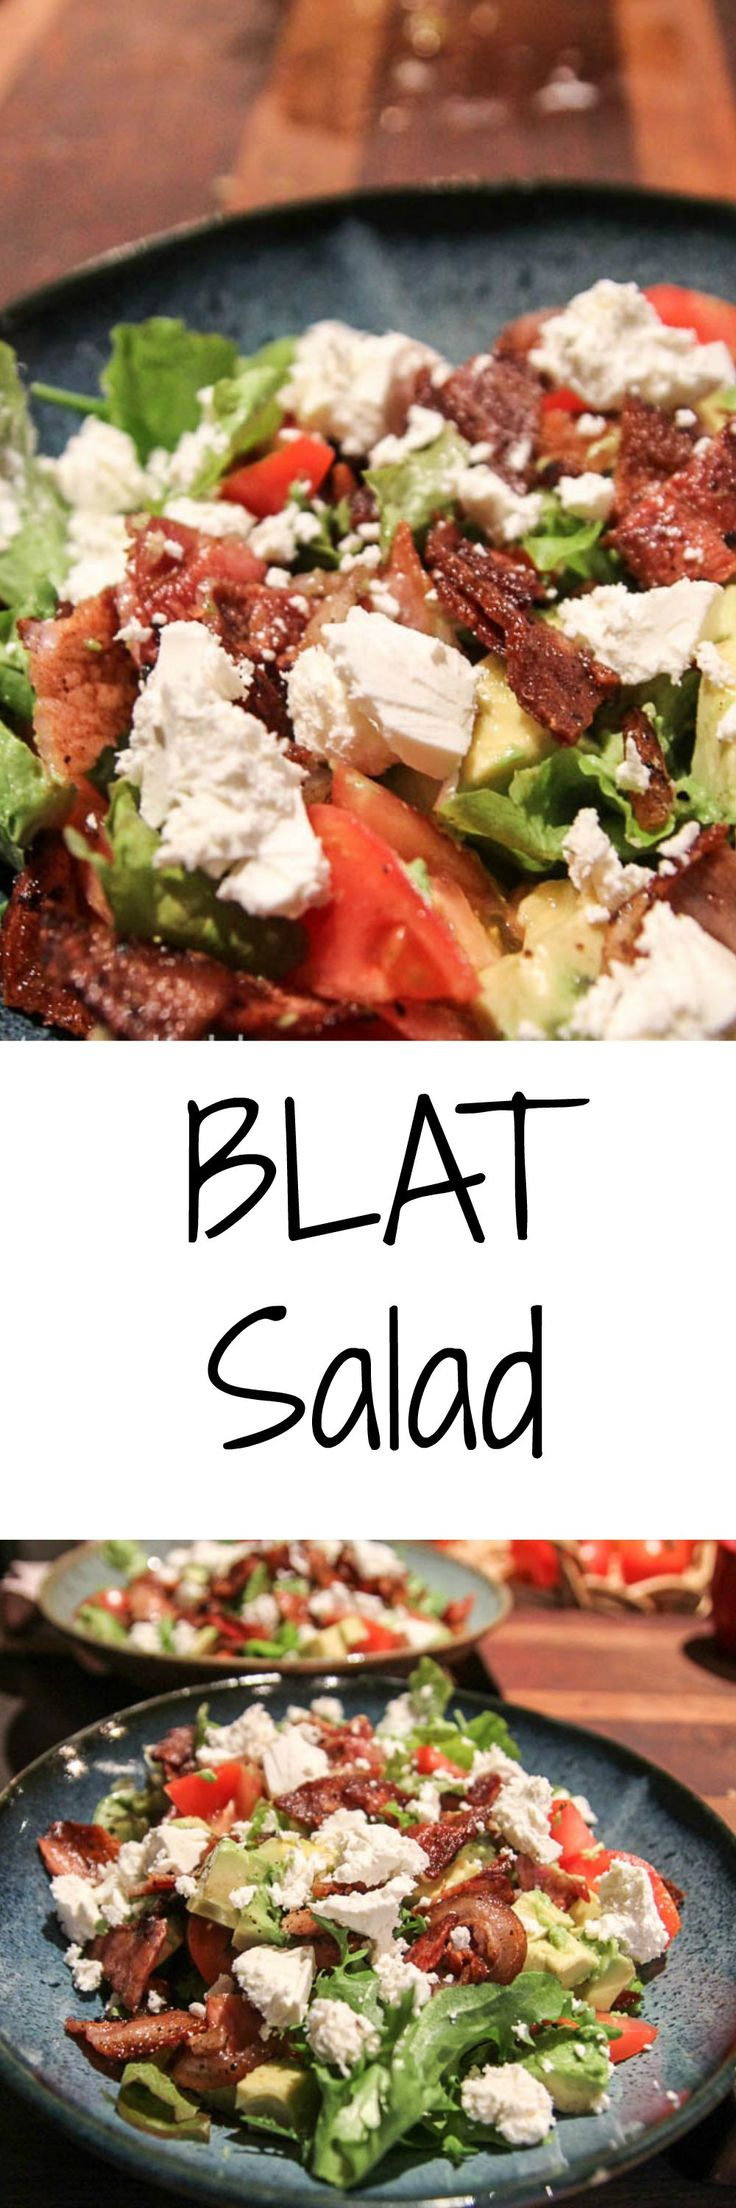 Easy BLAT w Feta Salad Recipe. A deconstructed BLAT sandwich turned into a salad. Super fast dinner option which is very delicious and will make you want to go back for more. Get this easy recipe now.